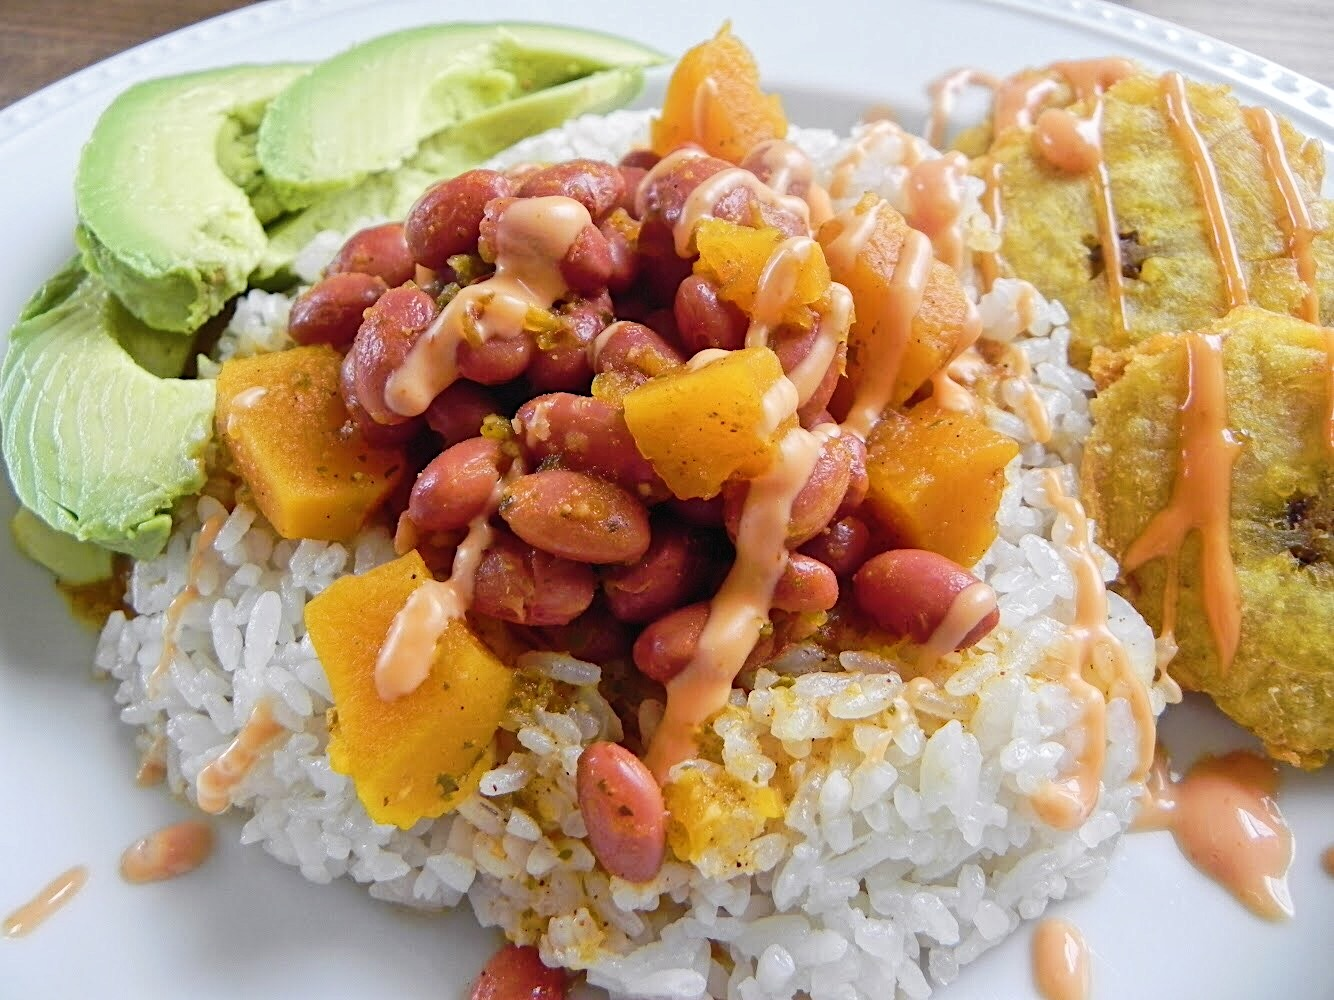 Arroz y Habichuelas Guisadas/Rice and Puerto Rican Stewed Beans